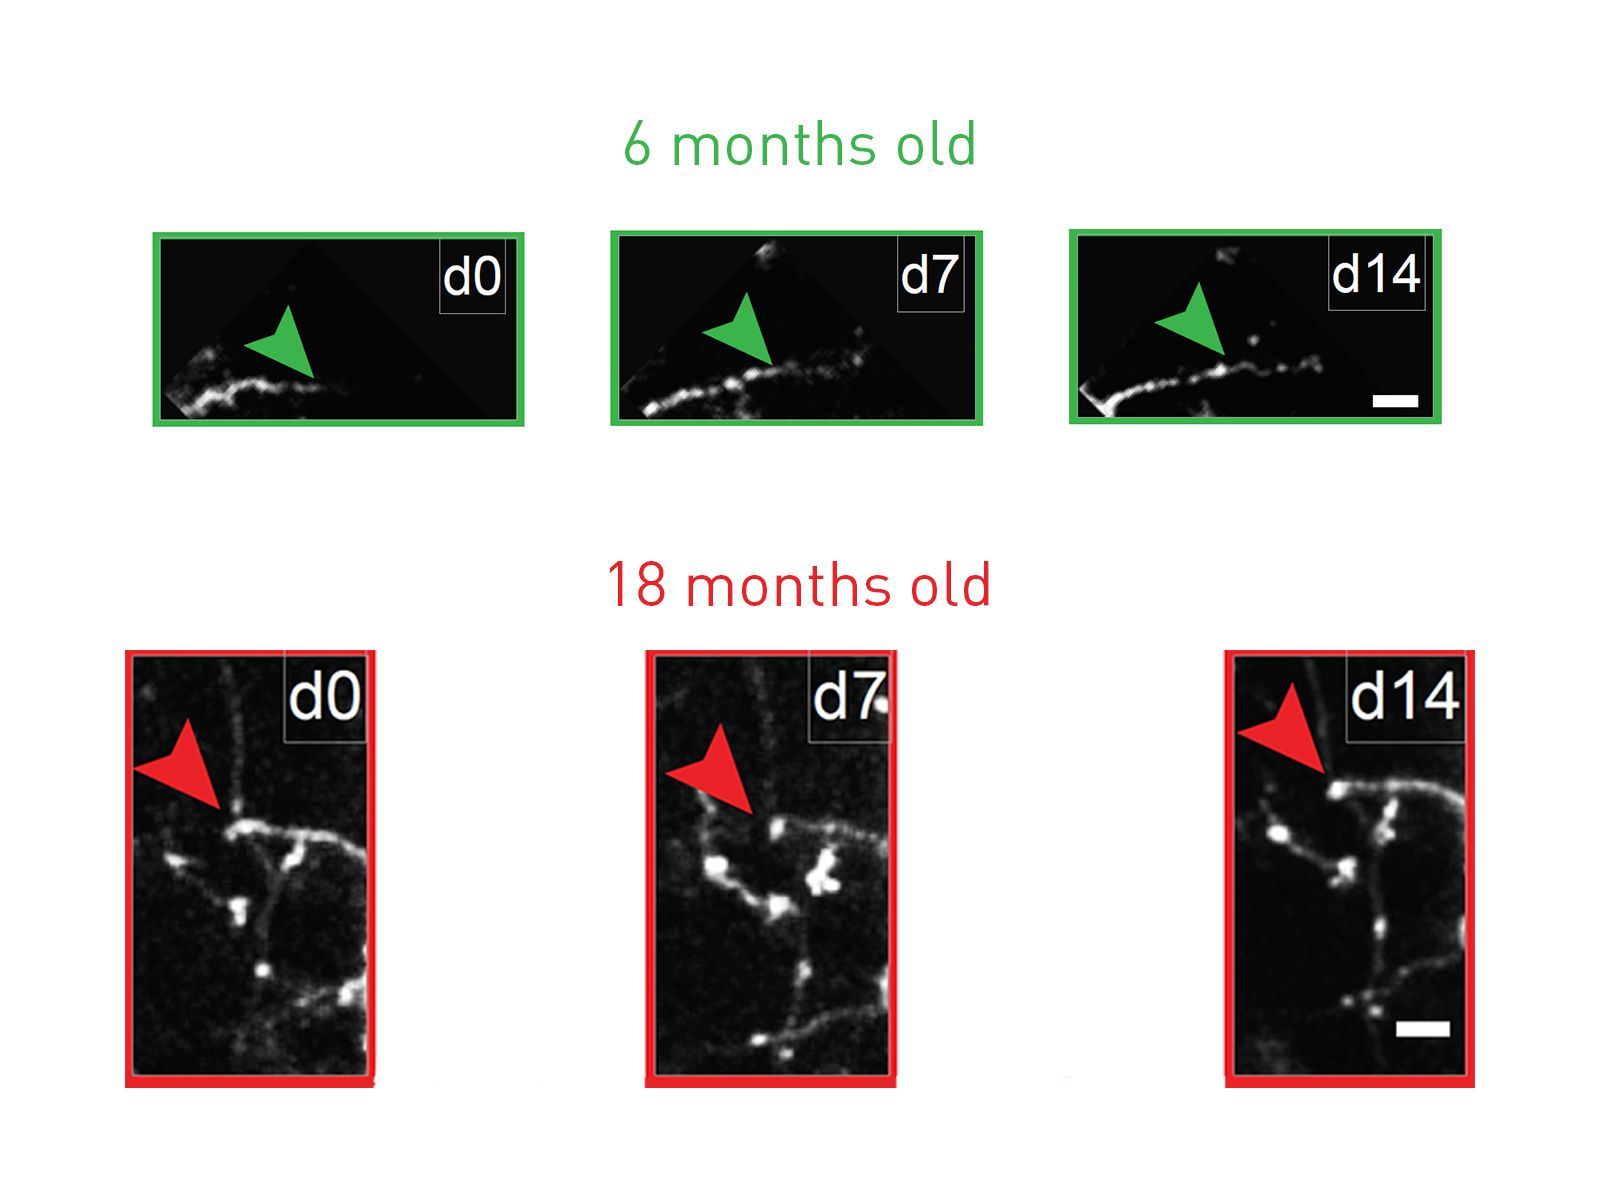 Antidepressant restores youthful flexibility to aging inhibitory neurons